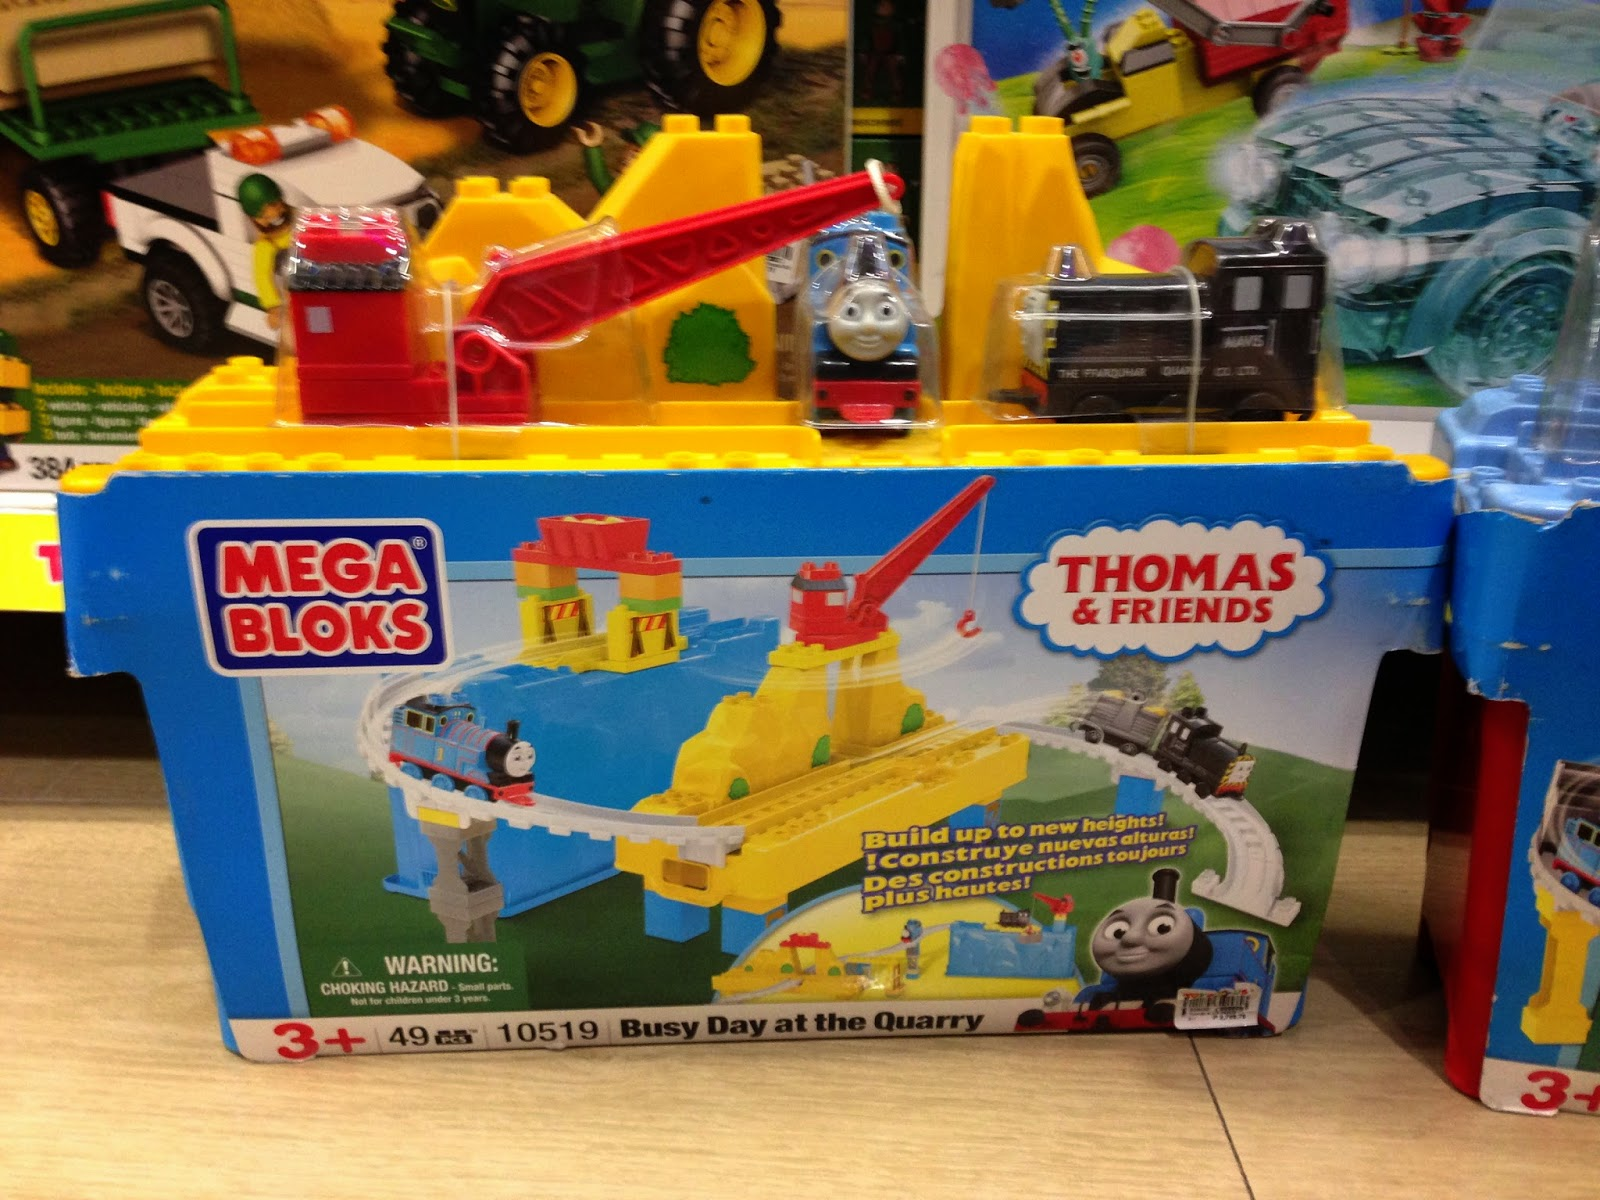 Thomas & Friends Mega Bloks on Sale in Manila, Philippines.  Toys R' Us and Toy Kingdom (Busy Day at the Quarry)